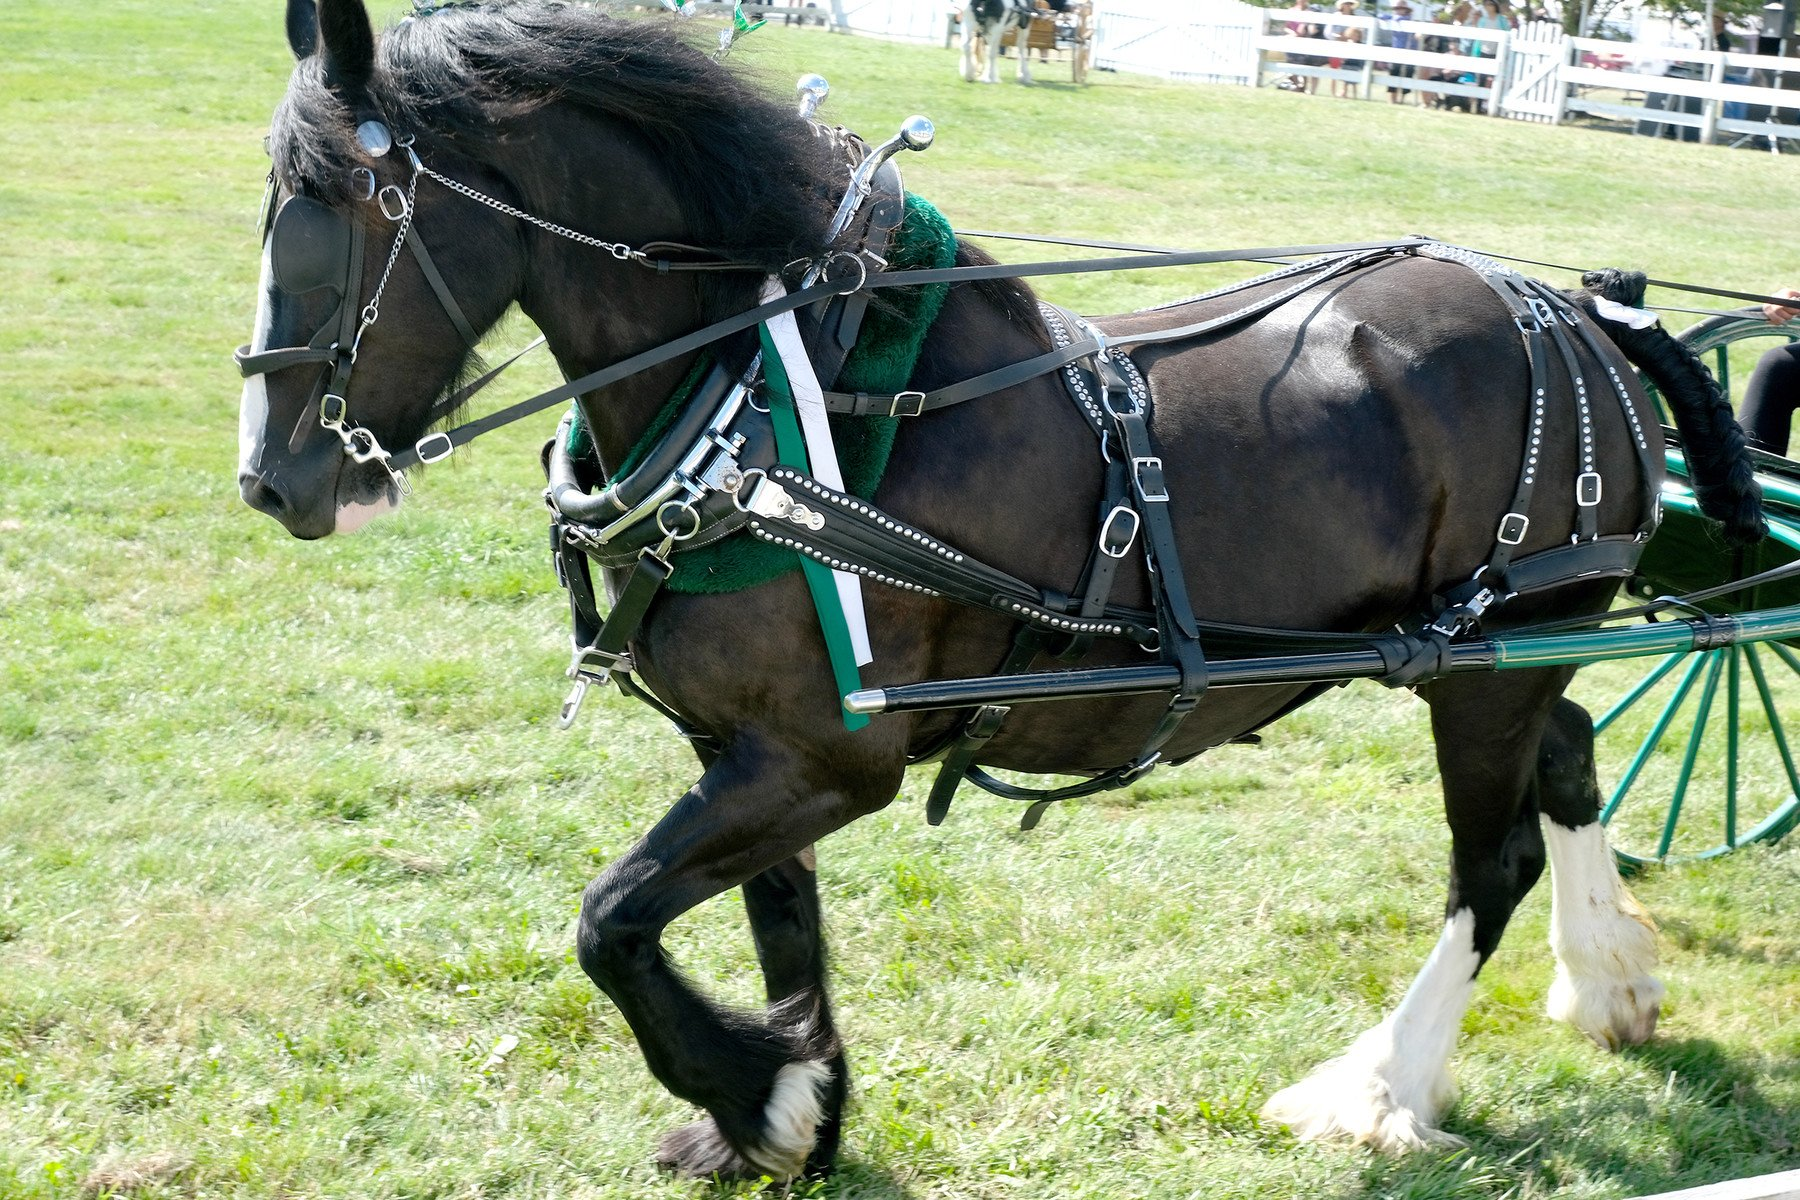 Artstation Clydesdale Horses With Cart Full Harness 110 Photos Horse Reference Photos Resources